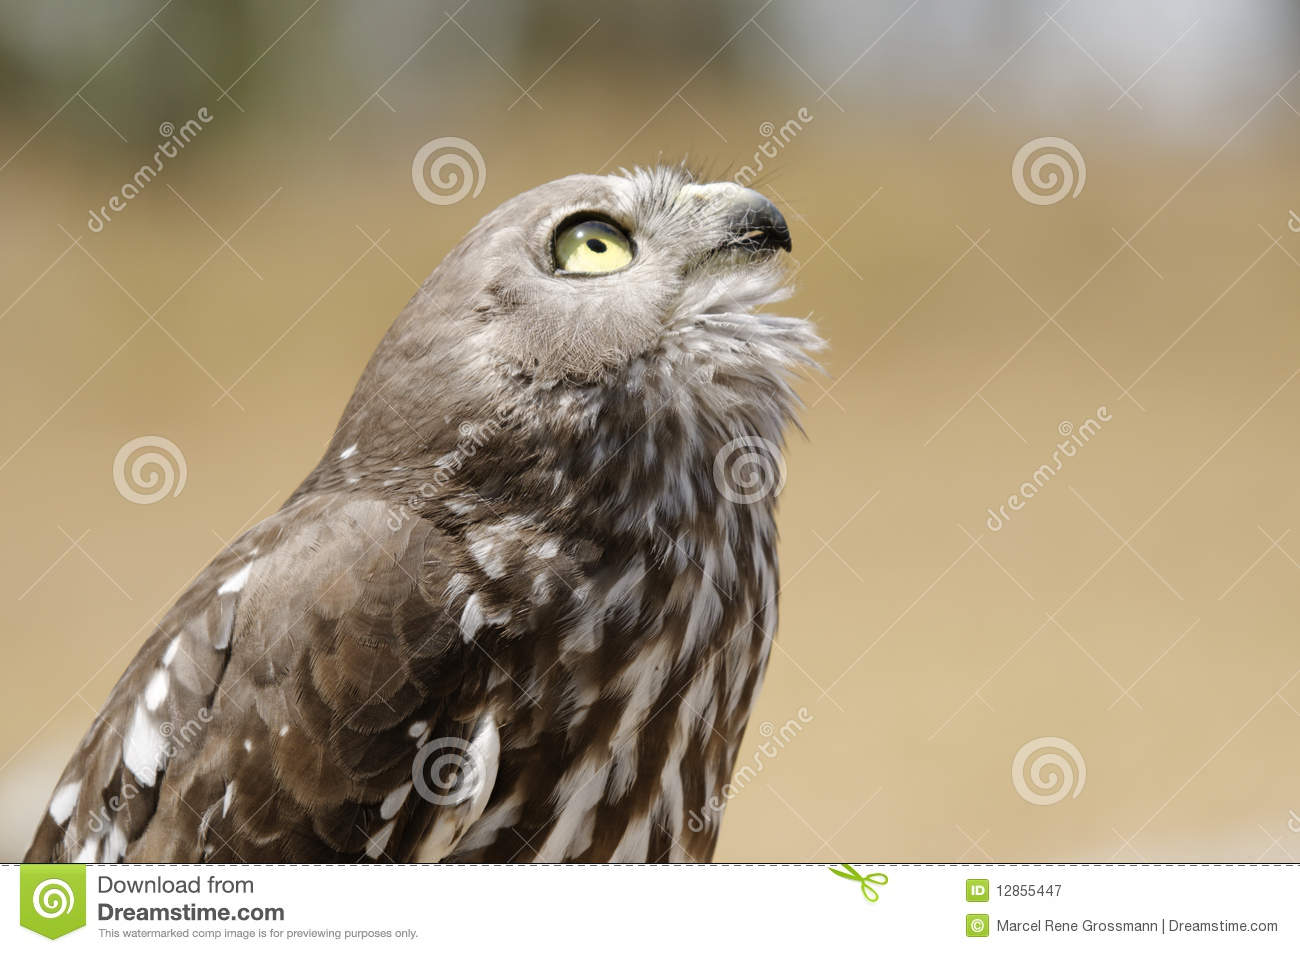 Bird Of Prey From Australia Stock Image Image Of Wilderness Insecurity 12855447